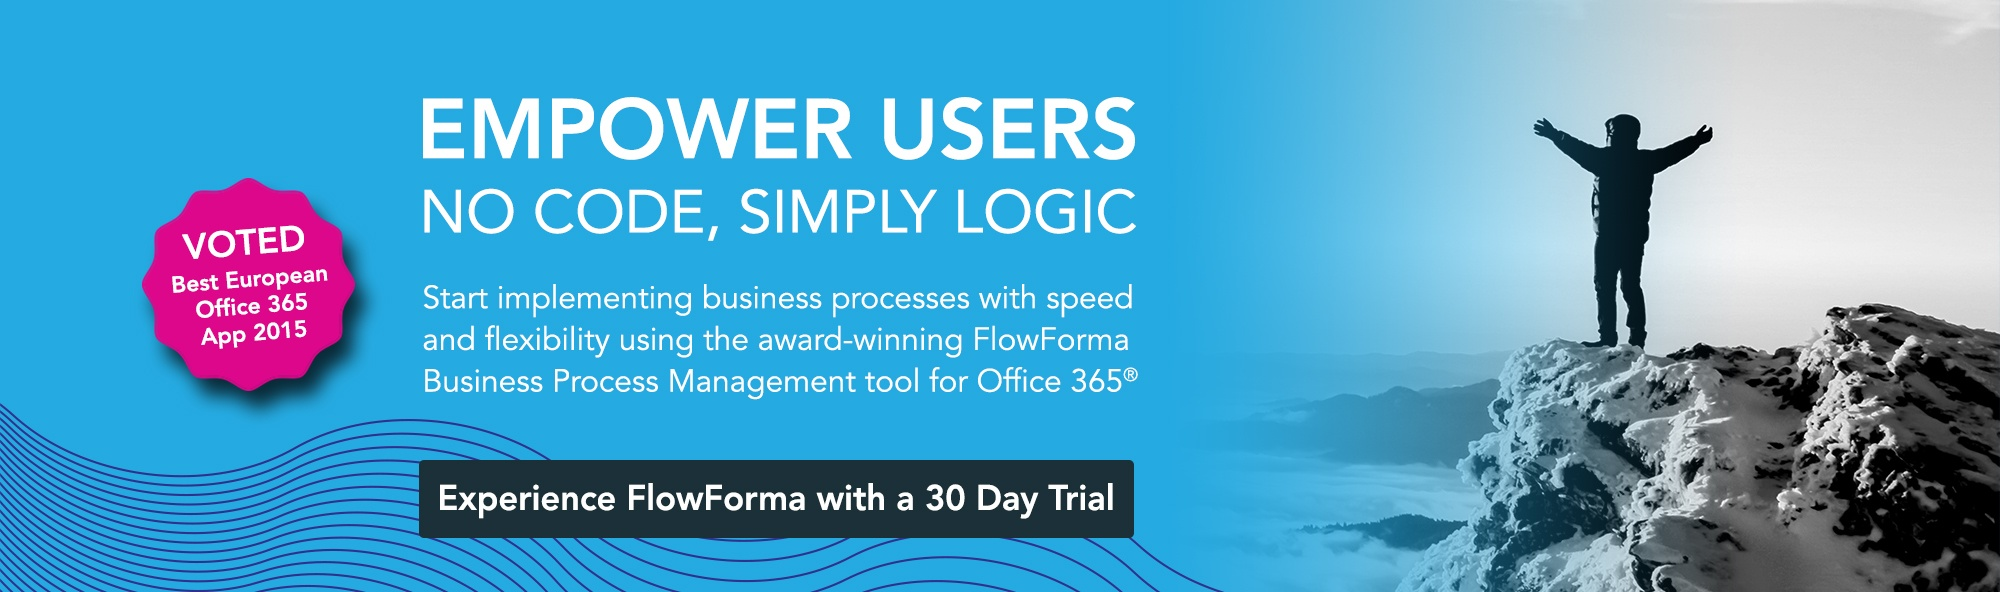 Start implementing your business processes with speed and flexibility using the award winning FlowForma business process management tool for office 365